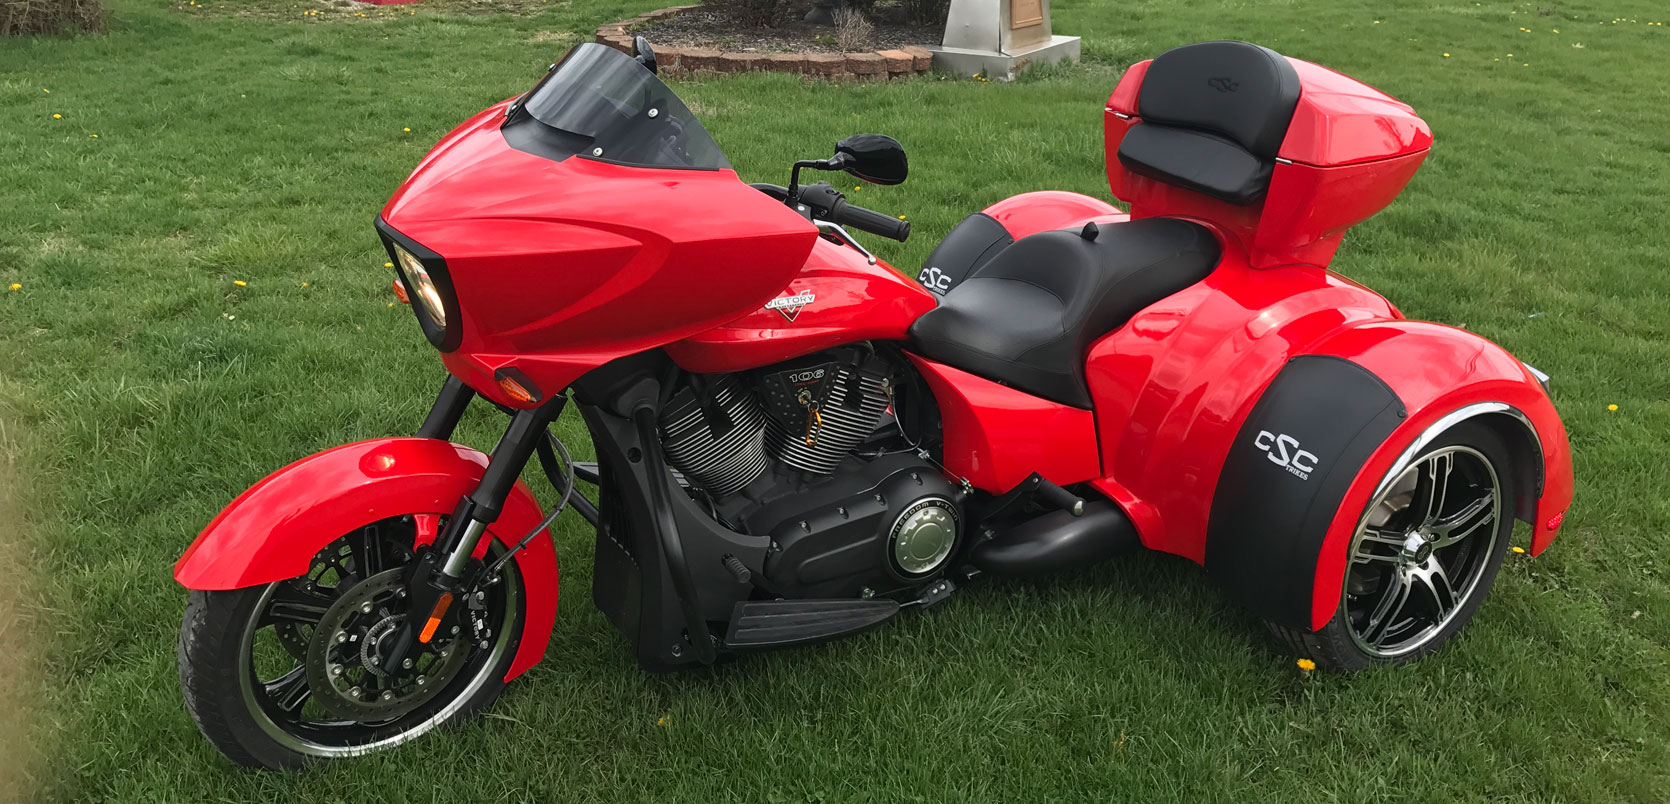 Trikes By Rodney - Motorcycle Trike Conversion - Zanesville